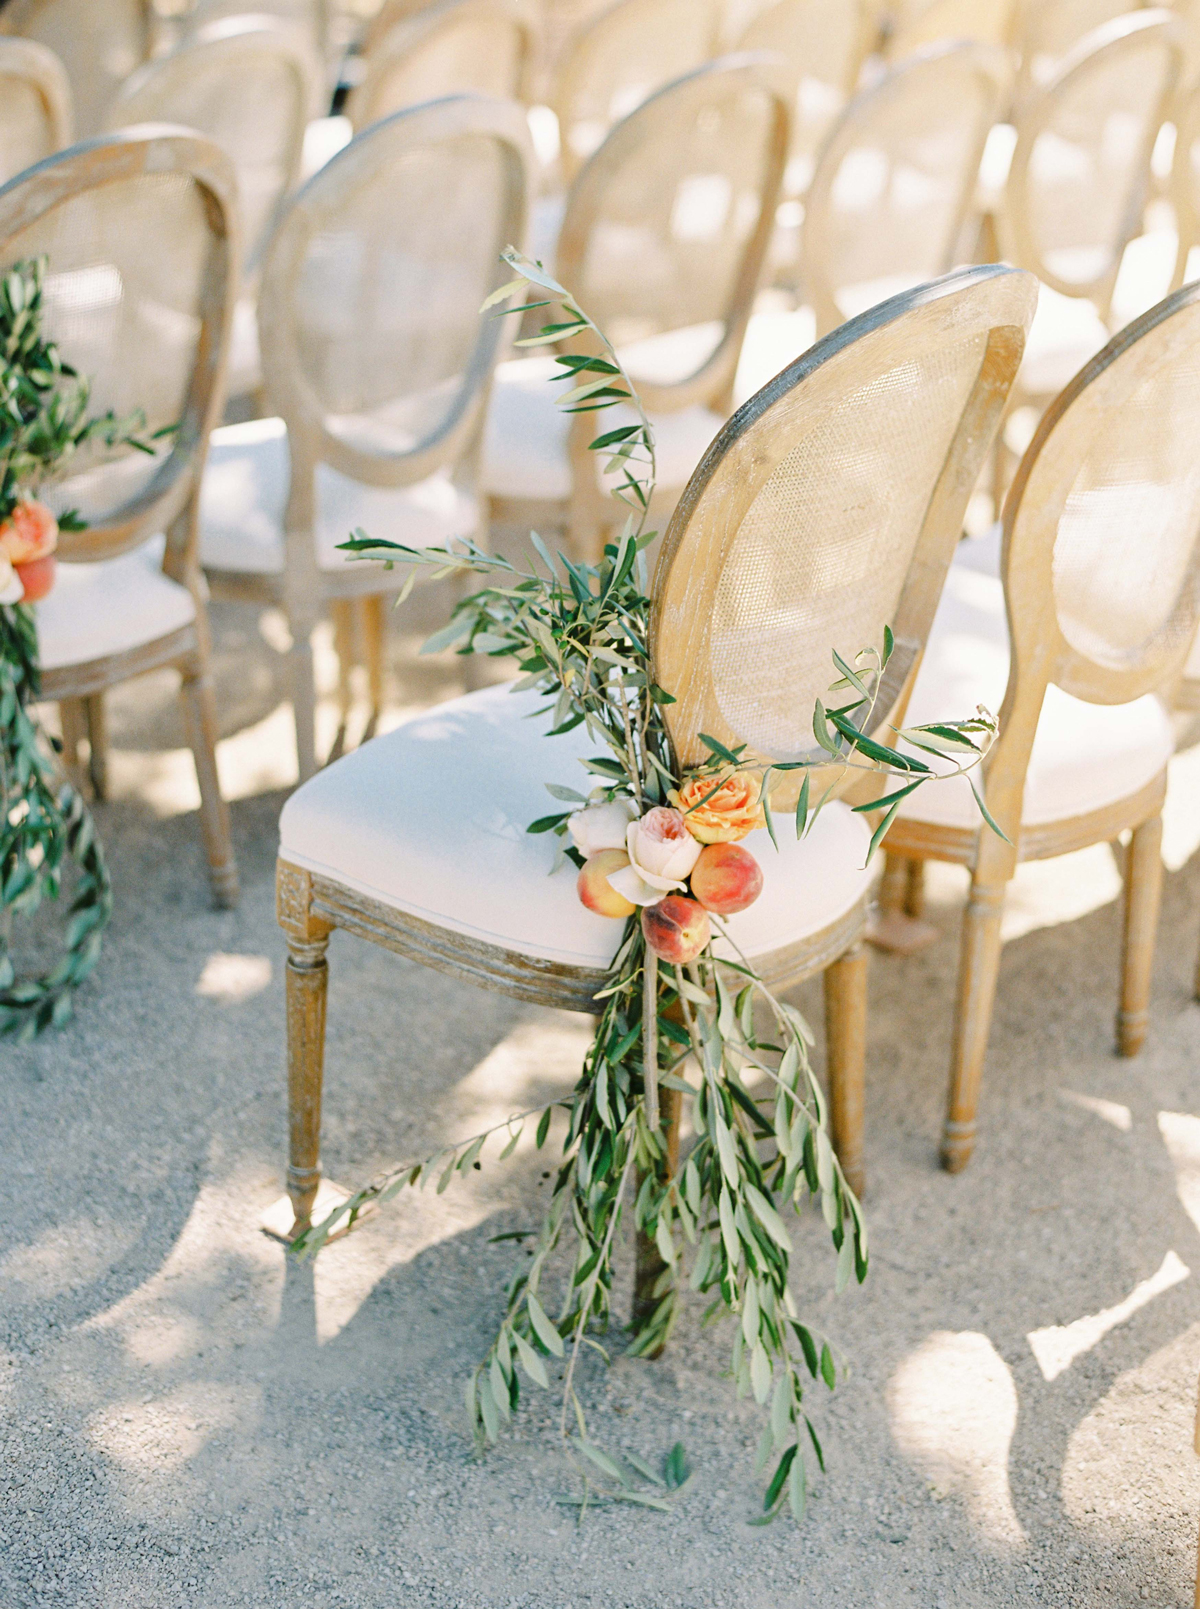 outer aisle chairs decorated with roses peaches and olive branches